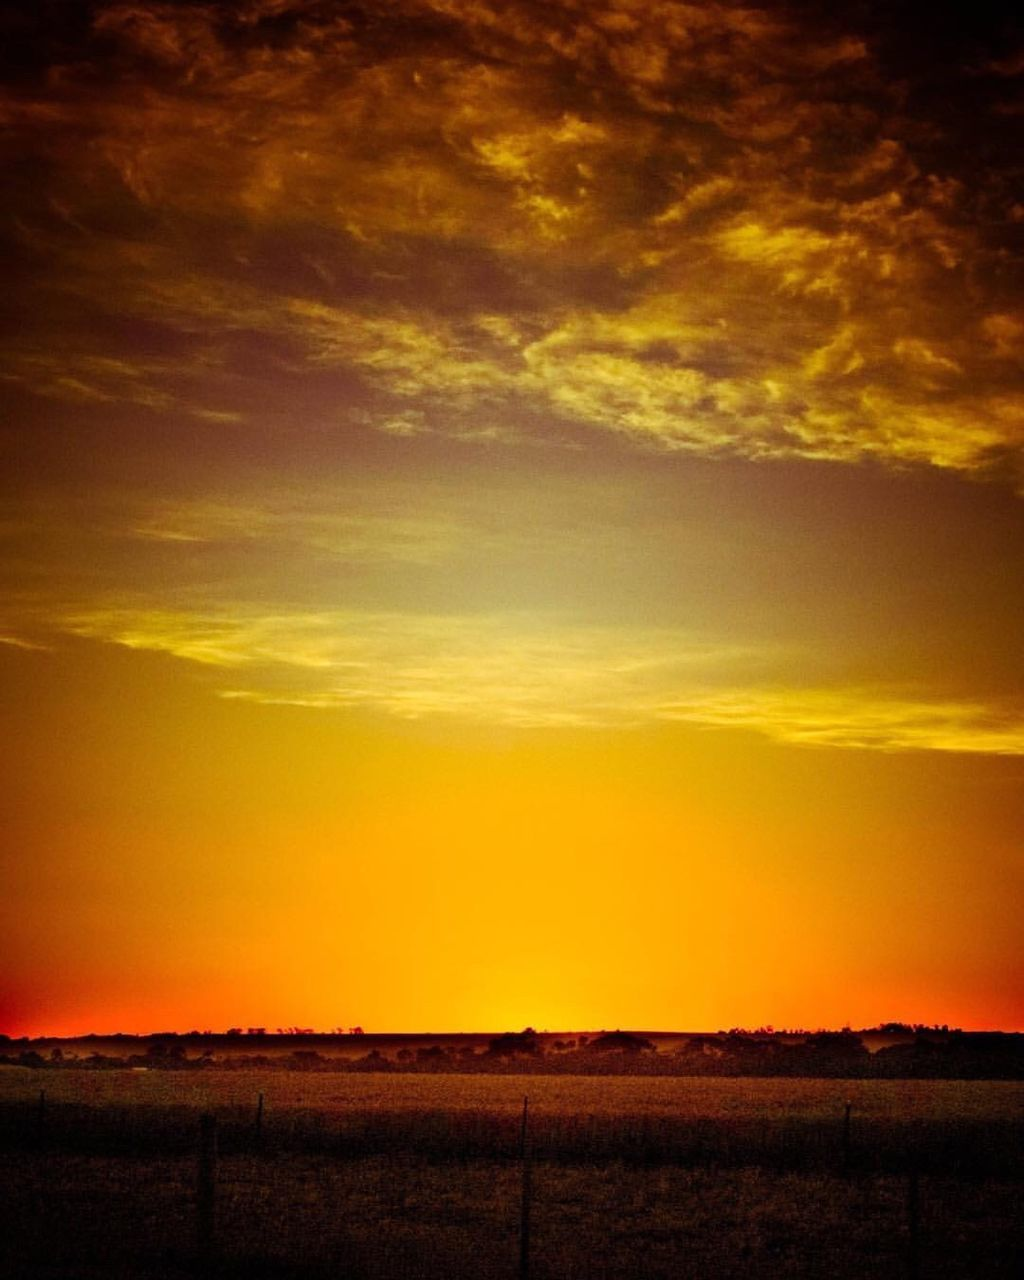 sunset, scenics, tranquil scene, beauty in nature, nature, tranquility, silhouette, sky, orange color, landscape, dramatic sky, no people, cloud - sky, outdoors, field, sun, yellow, day